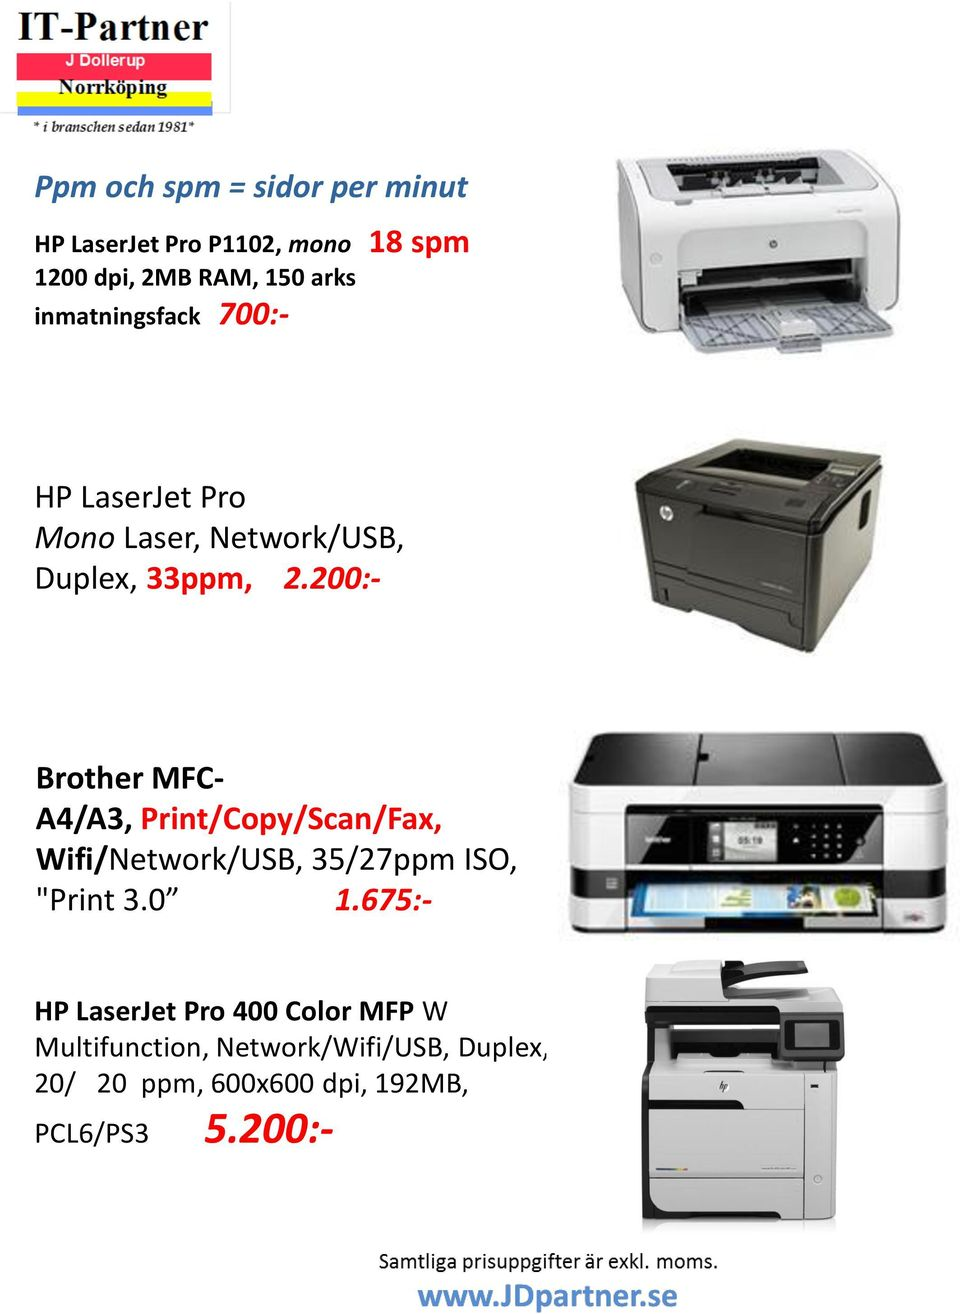 "200:- Brother MFC- A4/A3, Print/Copy/Scan/Fax, Wifi/Network/USB, 35/27ppm ISO, ""Print 3.0 1."